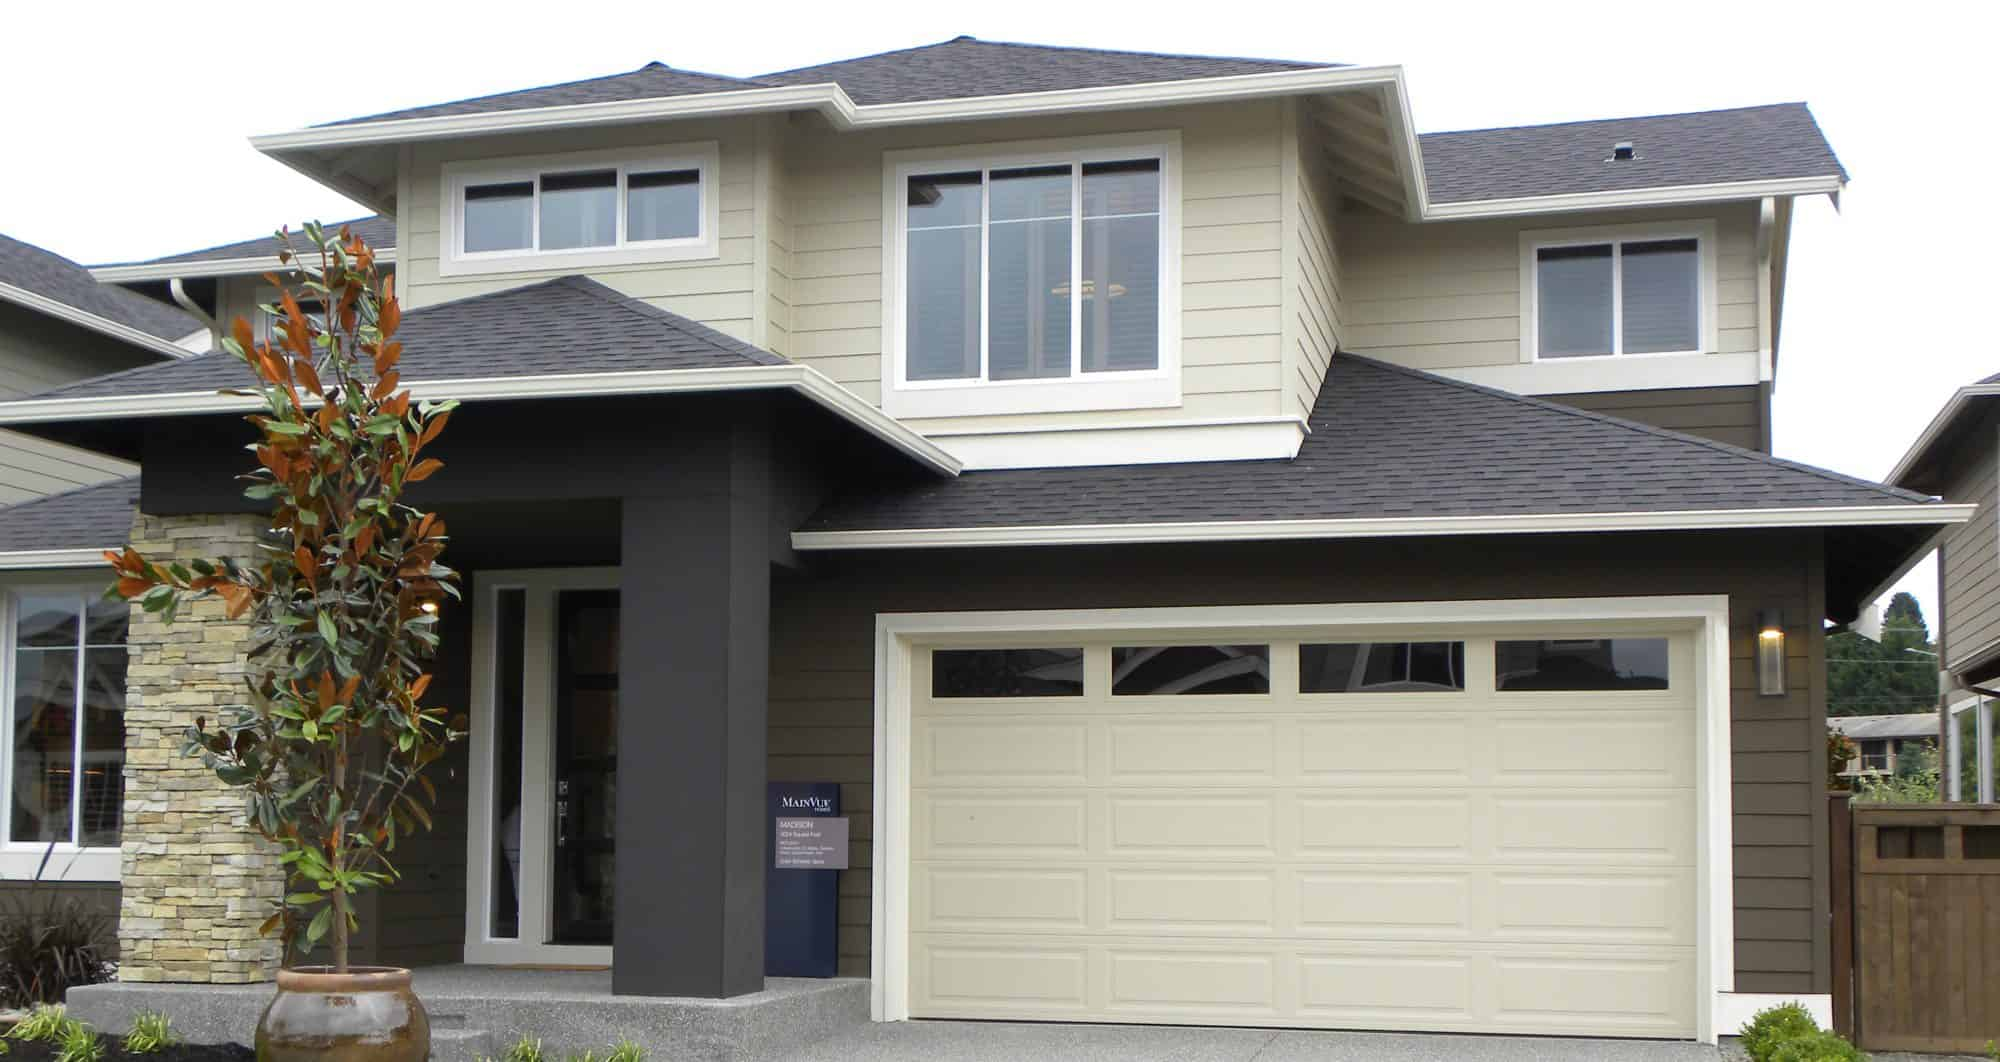 Insulated steel garage doors by northwest door cressy for Ranch house garage doors